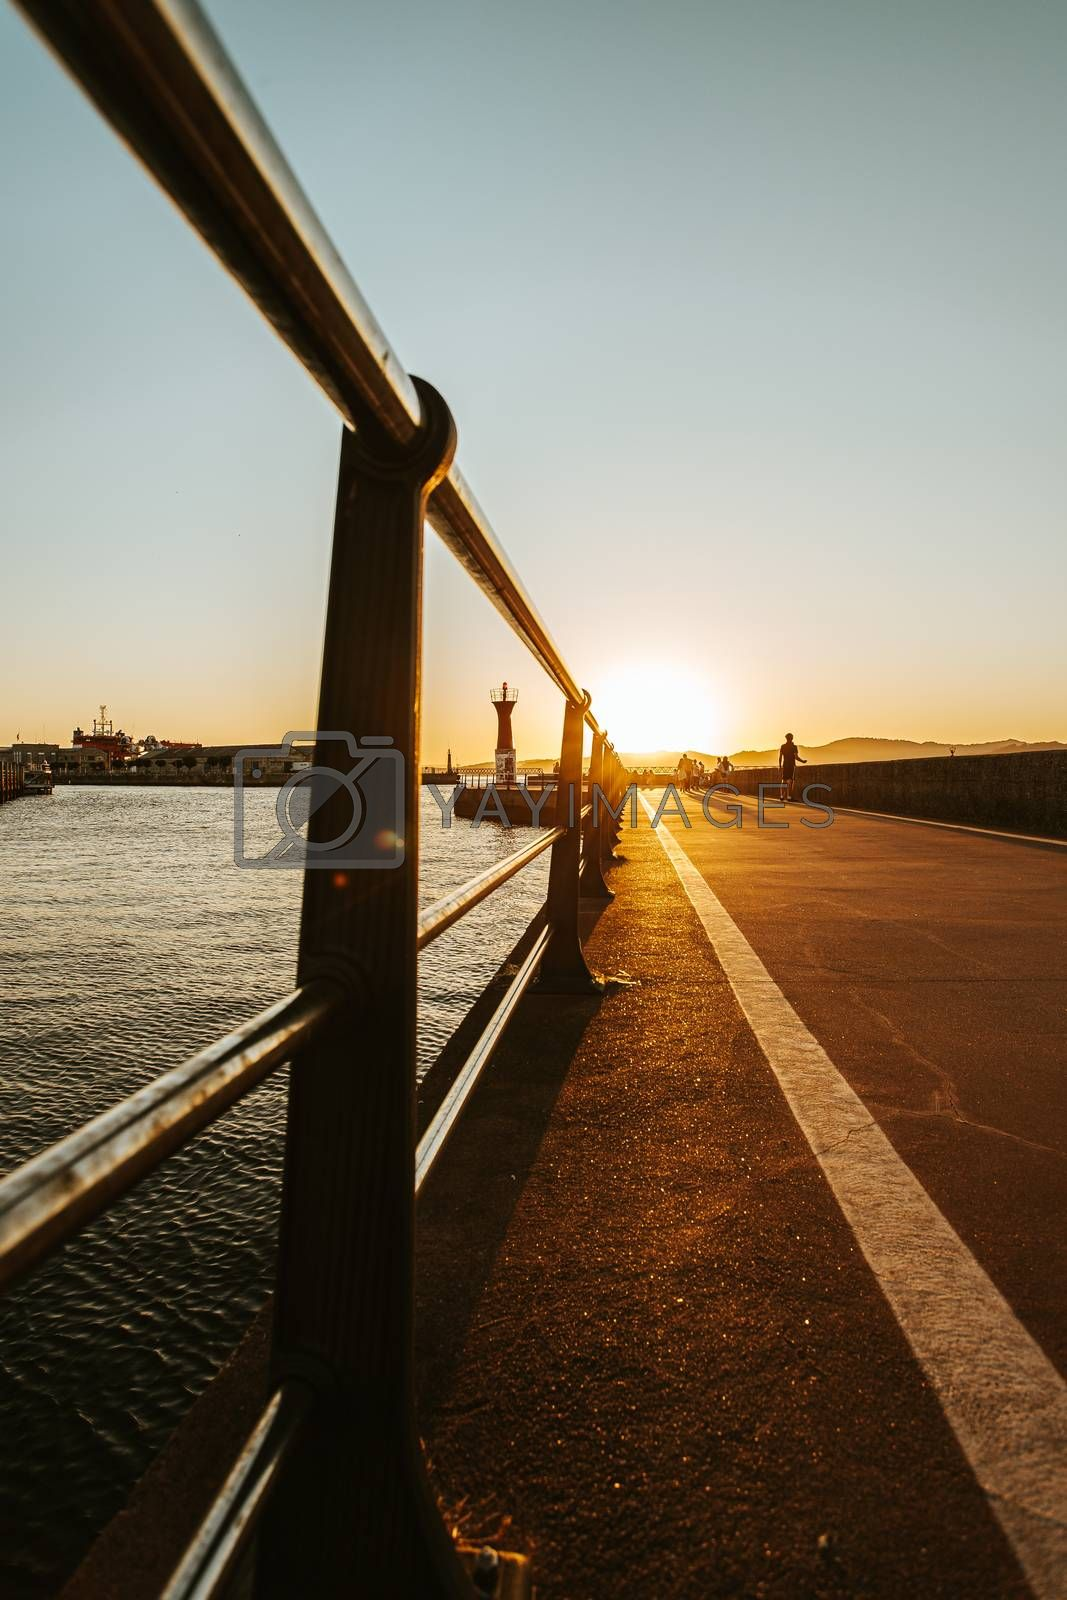 A ant view image of the path in the docks of vigo during a burning sunset